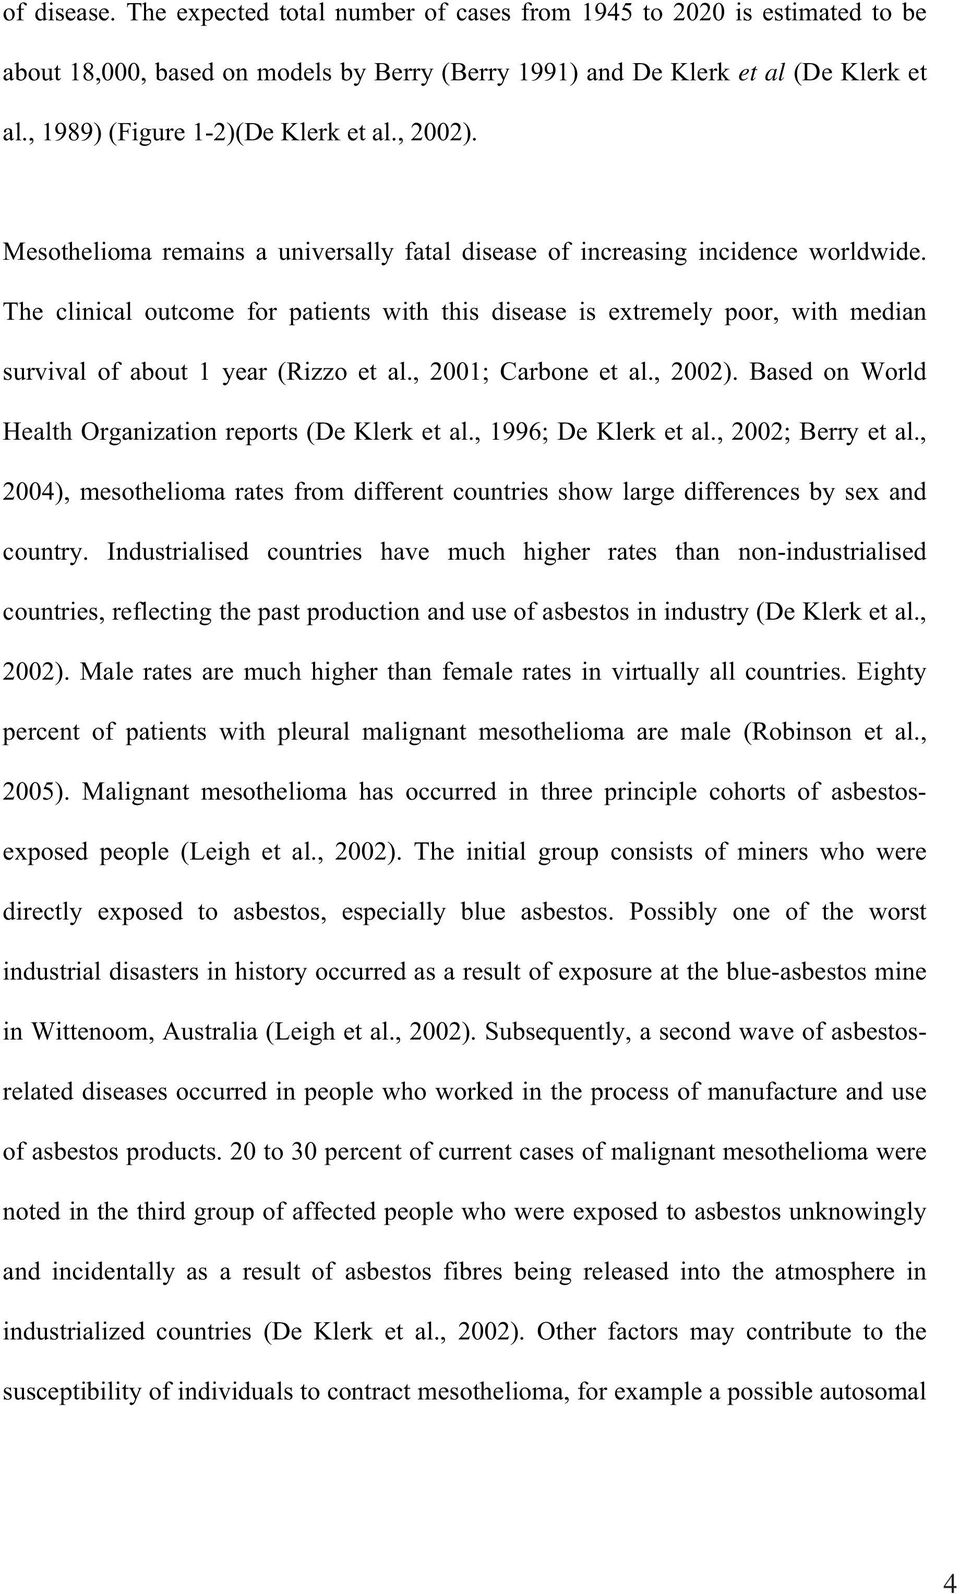 The clinical outcome for patients with this disease is extremely poor, with median survival of about 1 year (Rizzo et al., 2001; Carbone et al., 2002).